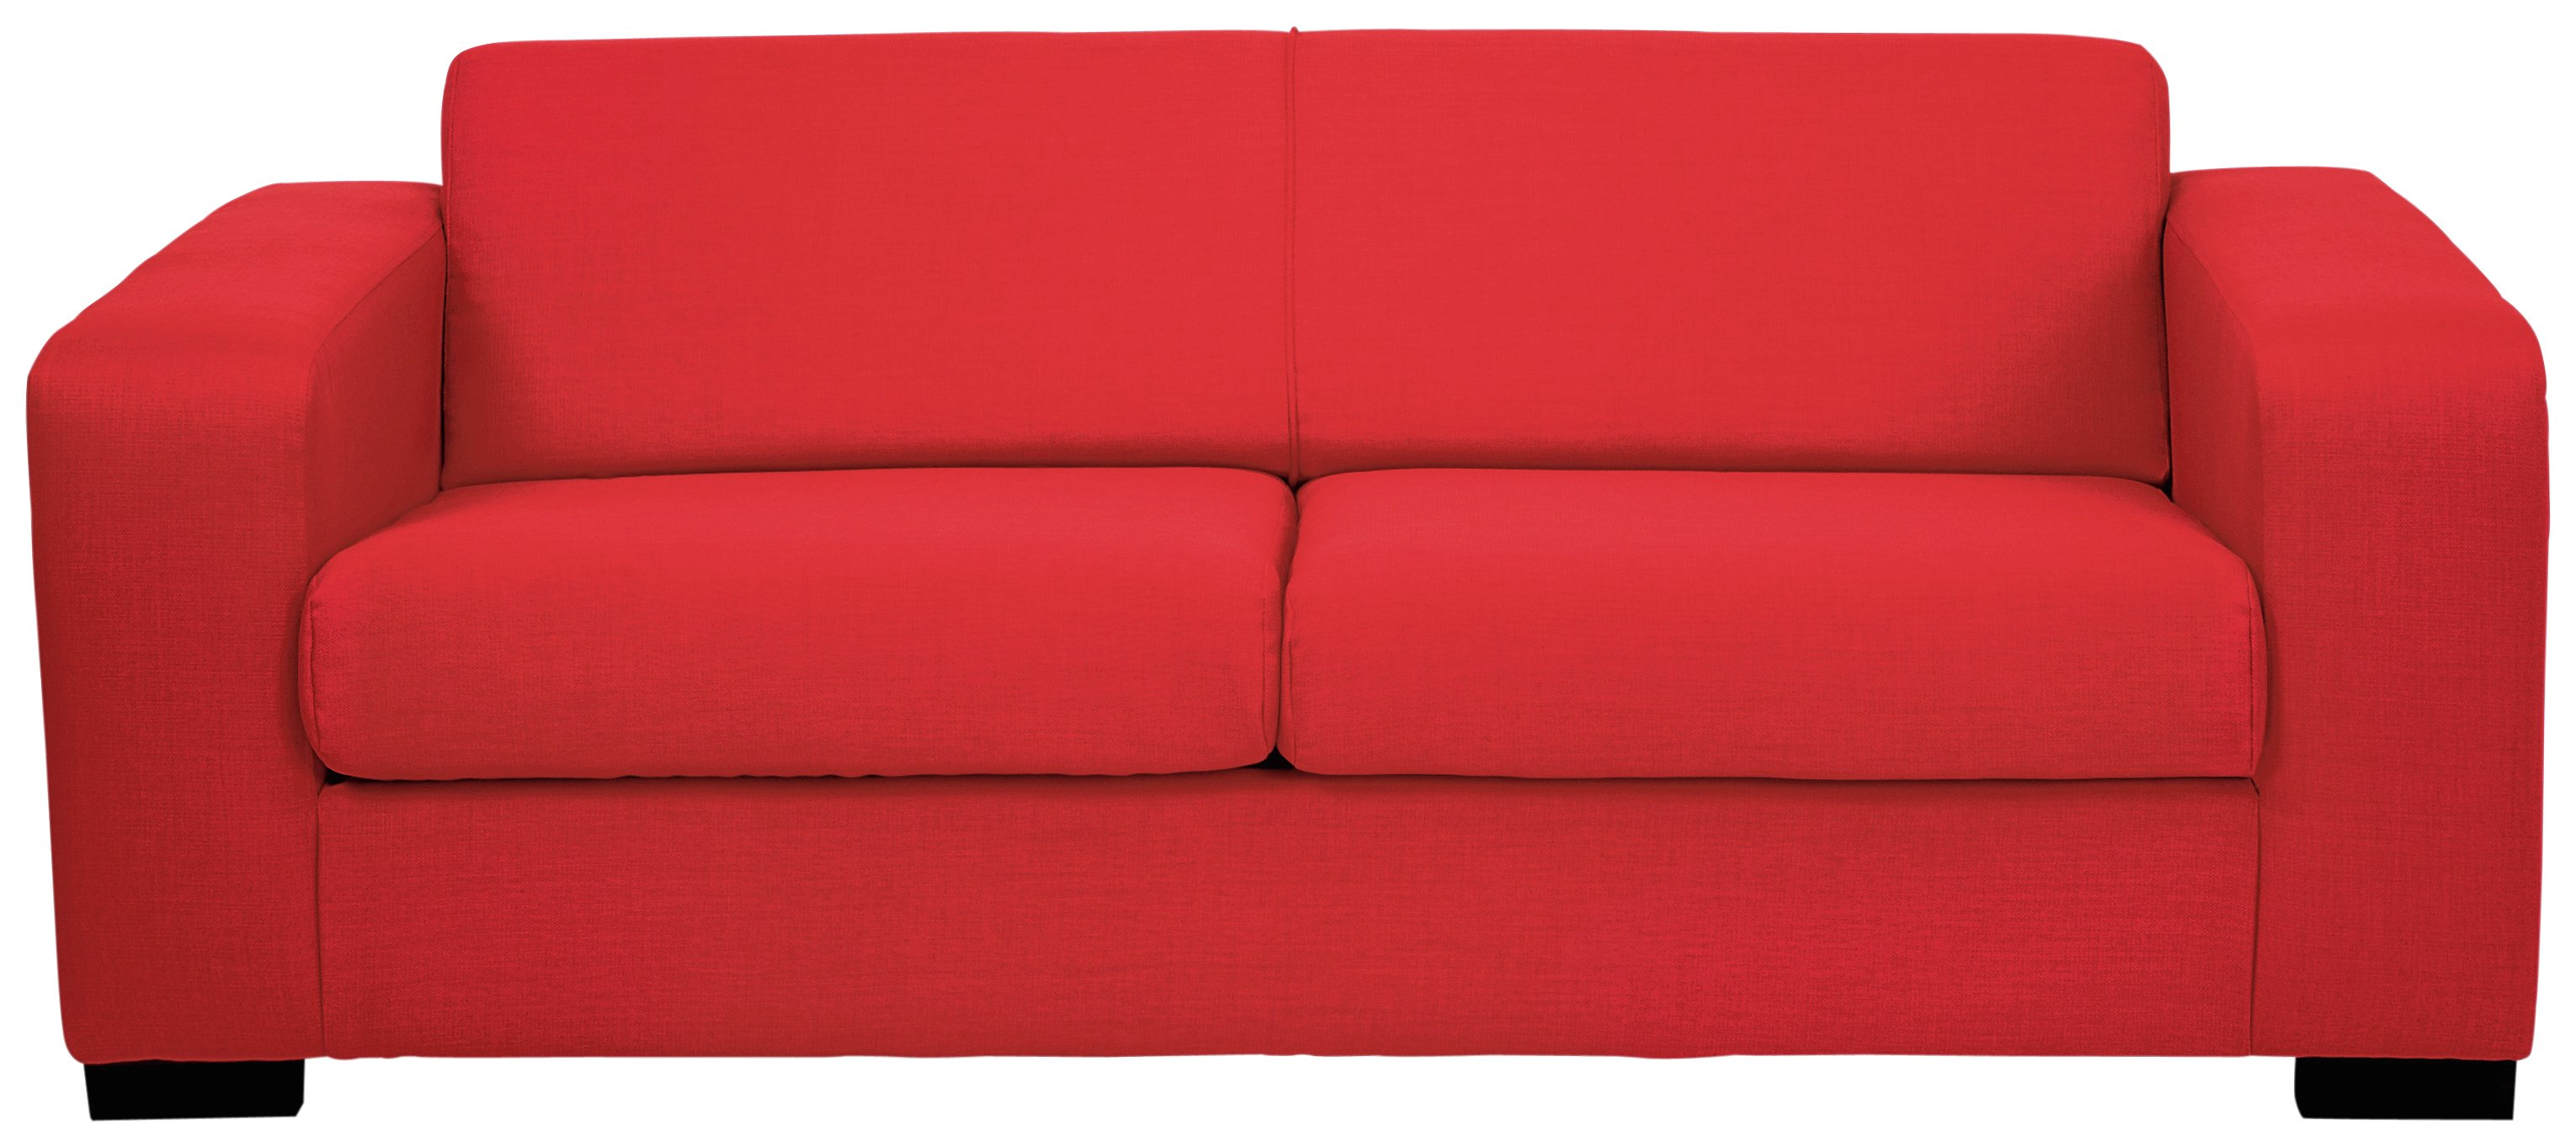 Image of Hygena - New Ava 3 Seater - Fabric Sofa - Red